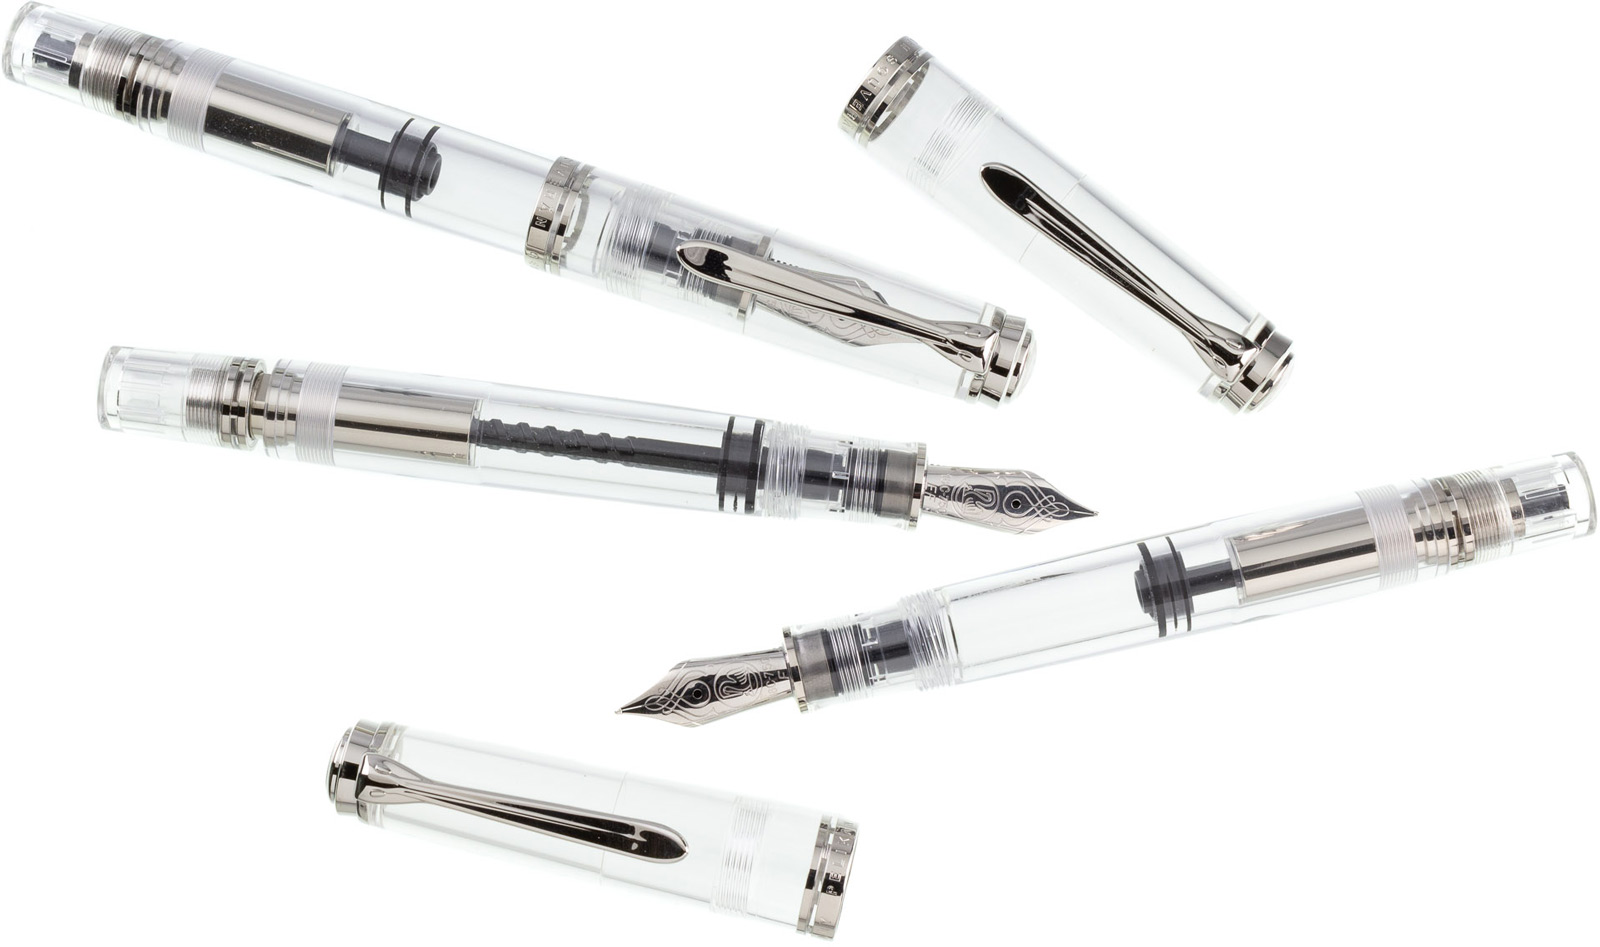 Pelikan M805 Demonstrator Fountain Pens